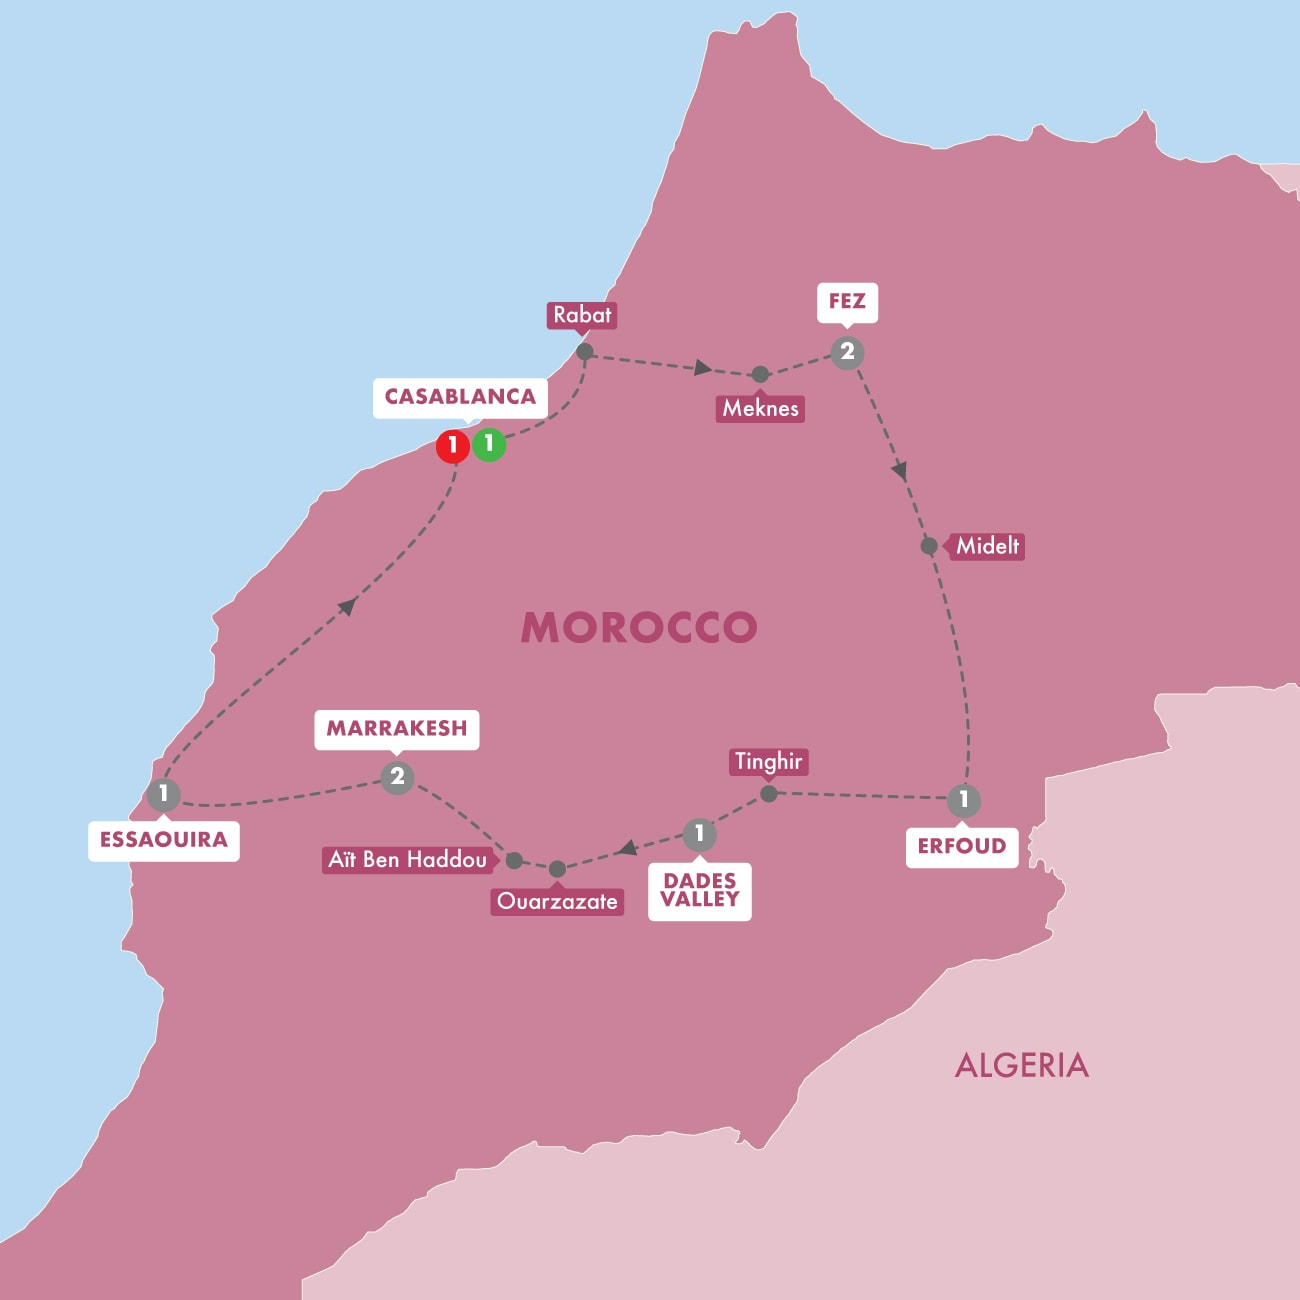 Map showing route taken, modes of transport and stays during your holiday